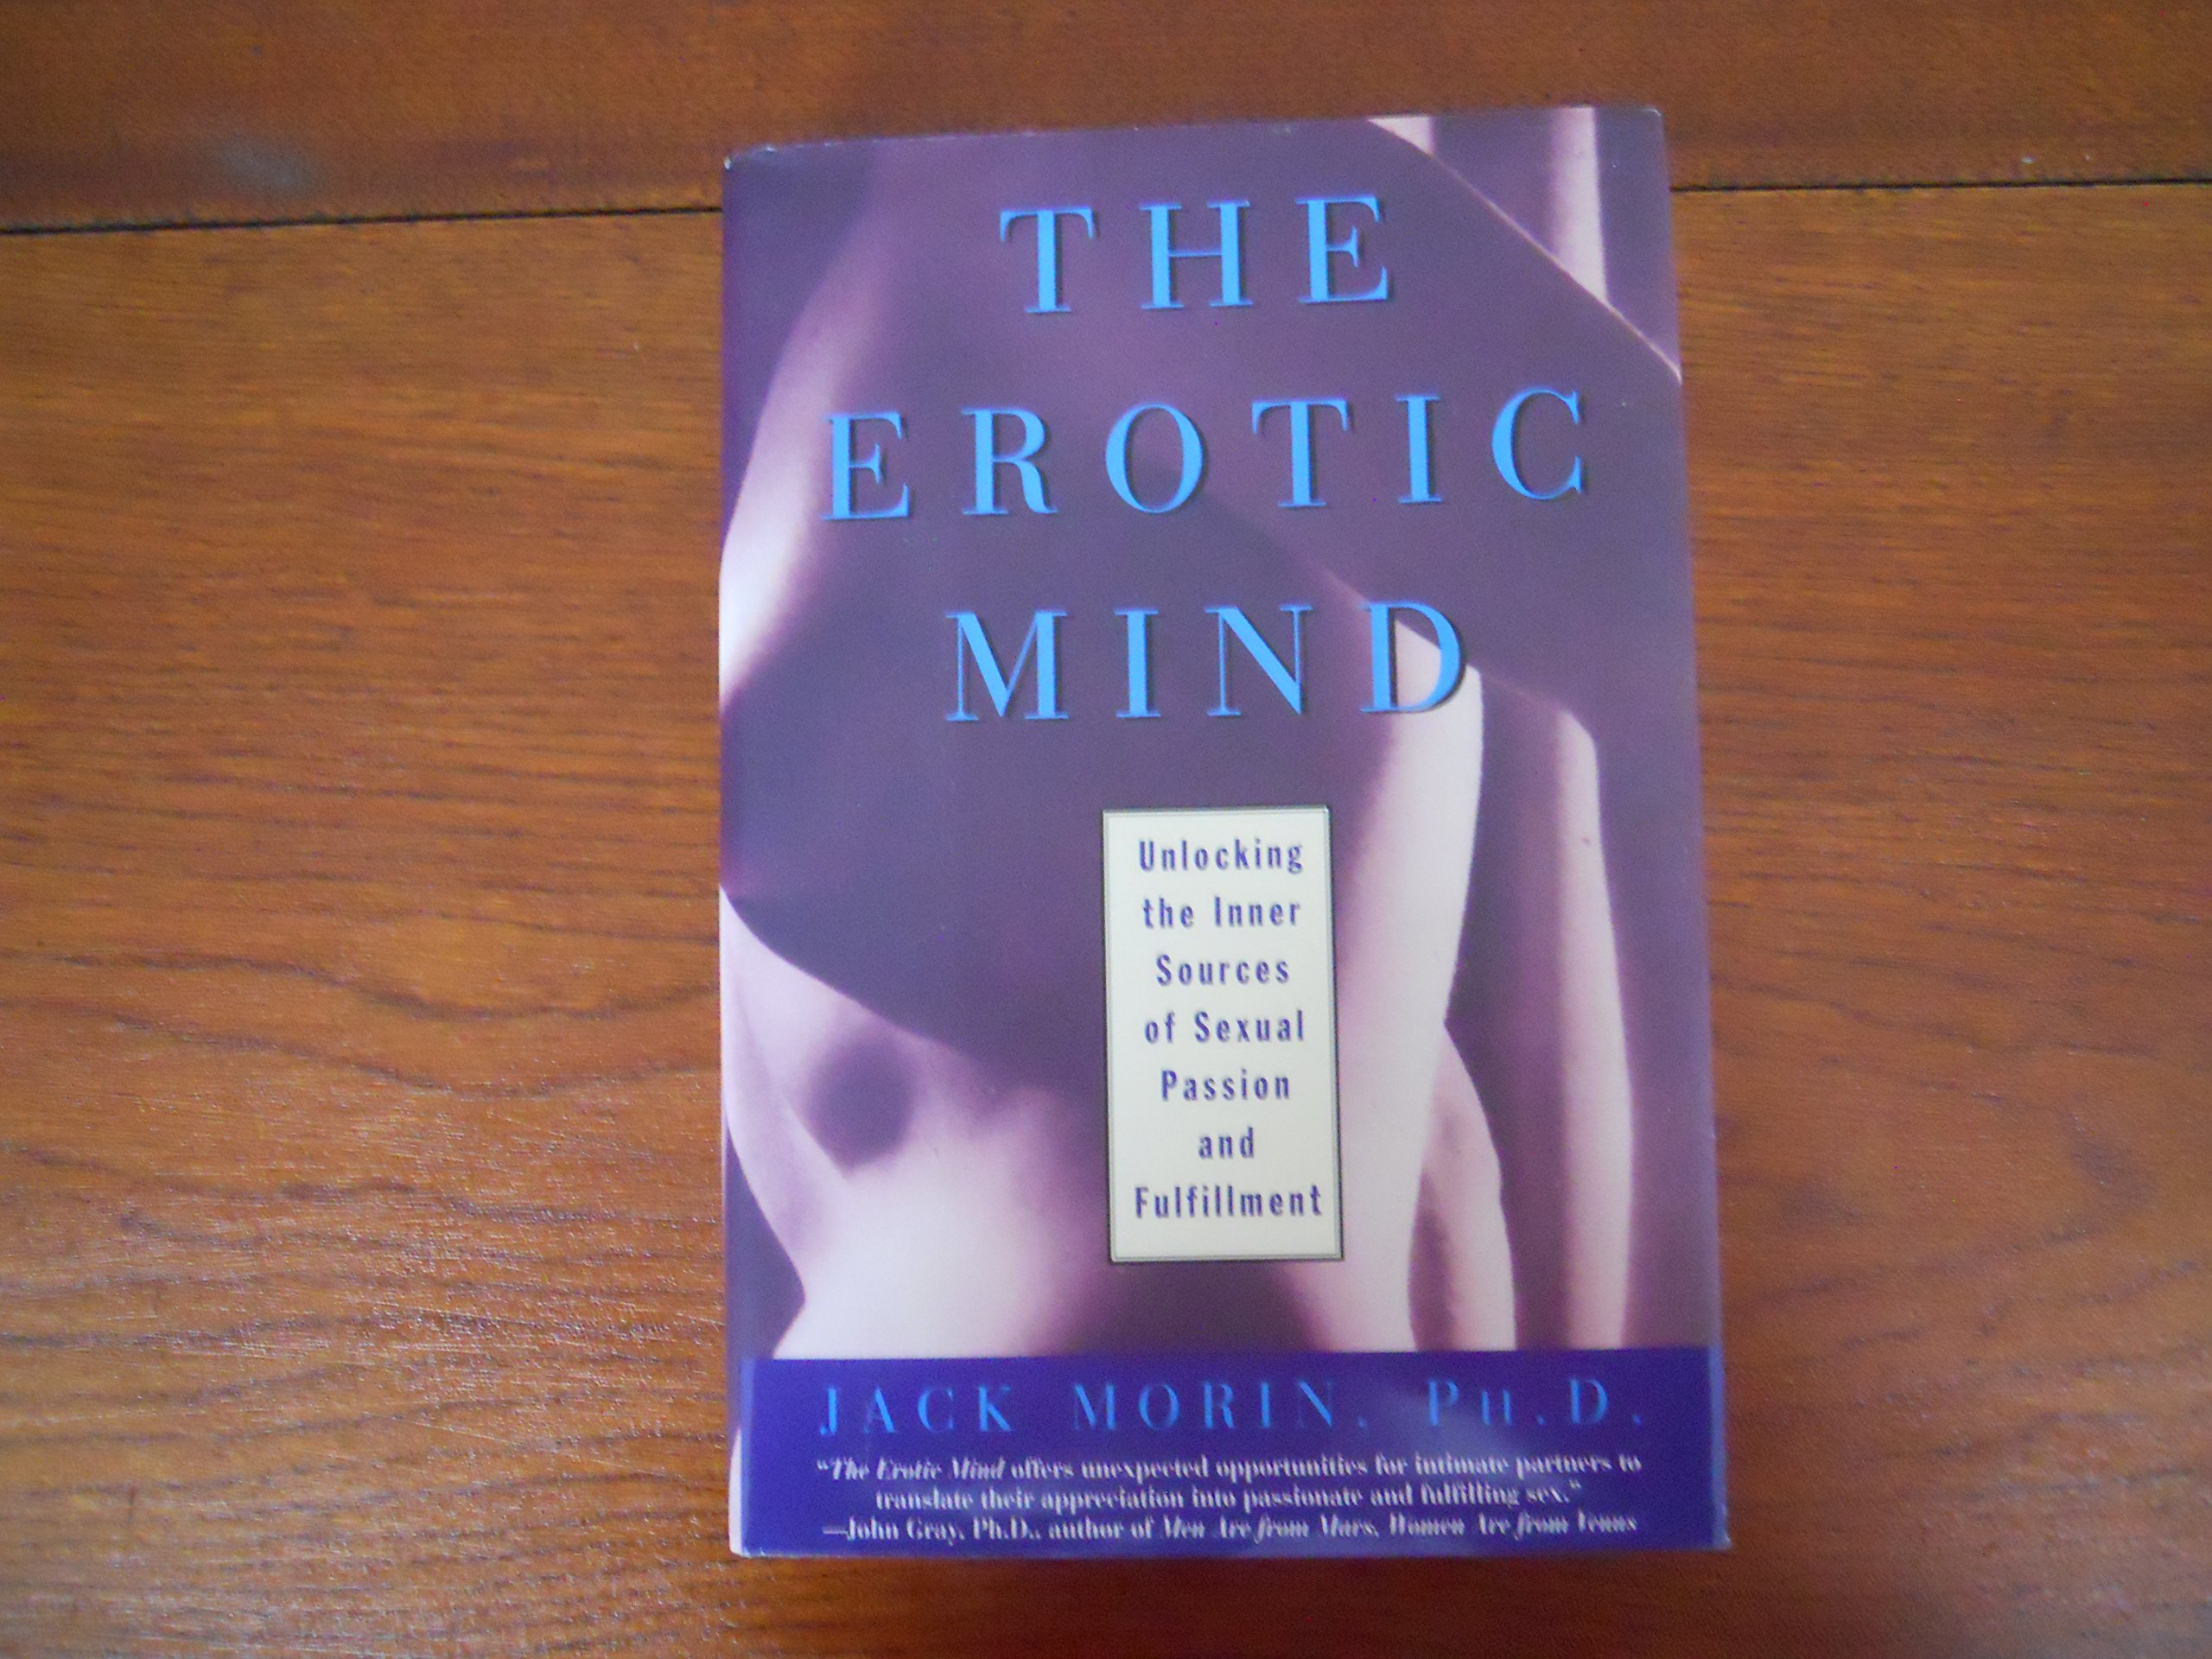 mind by morin jack The erotic